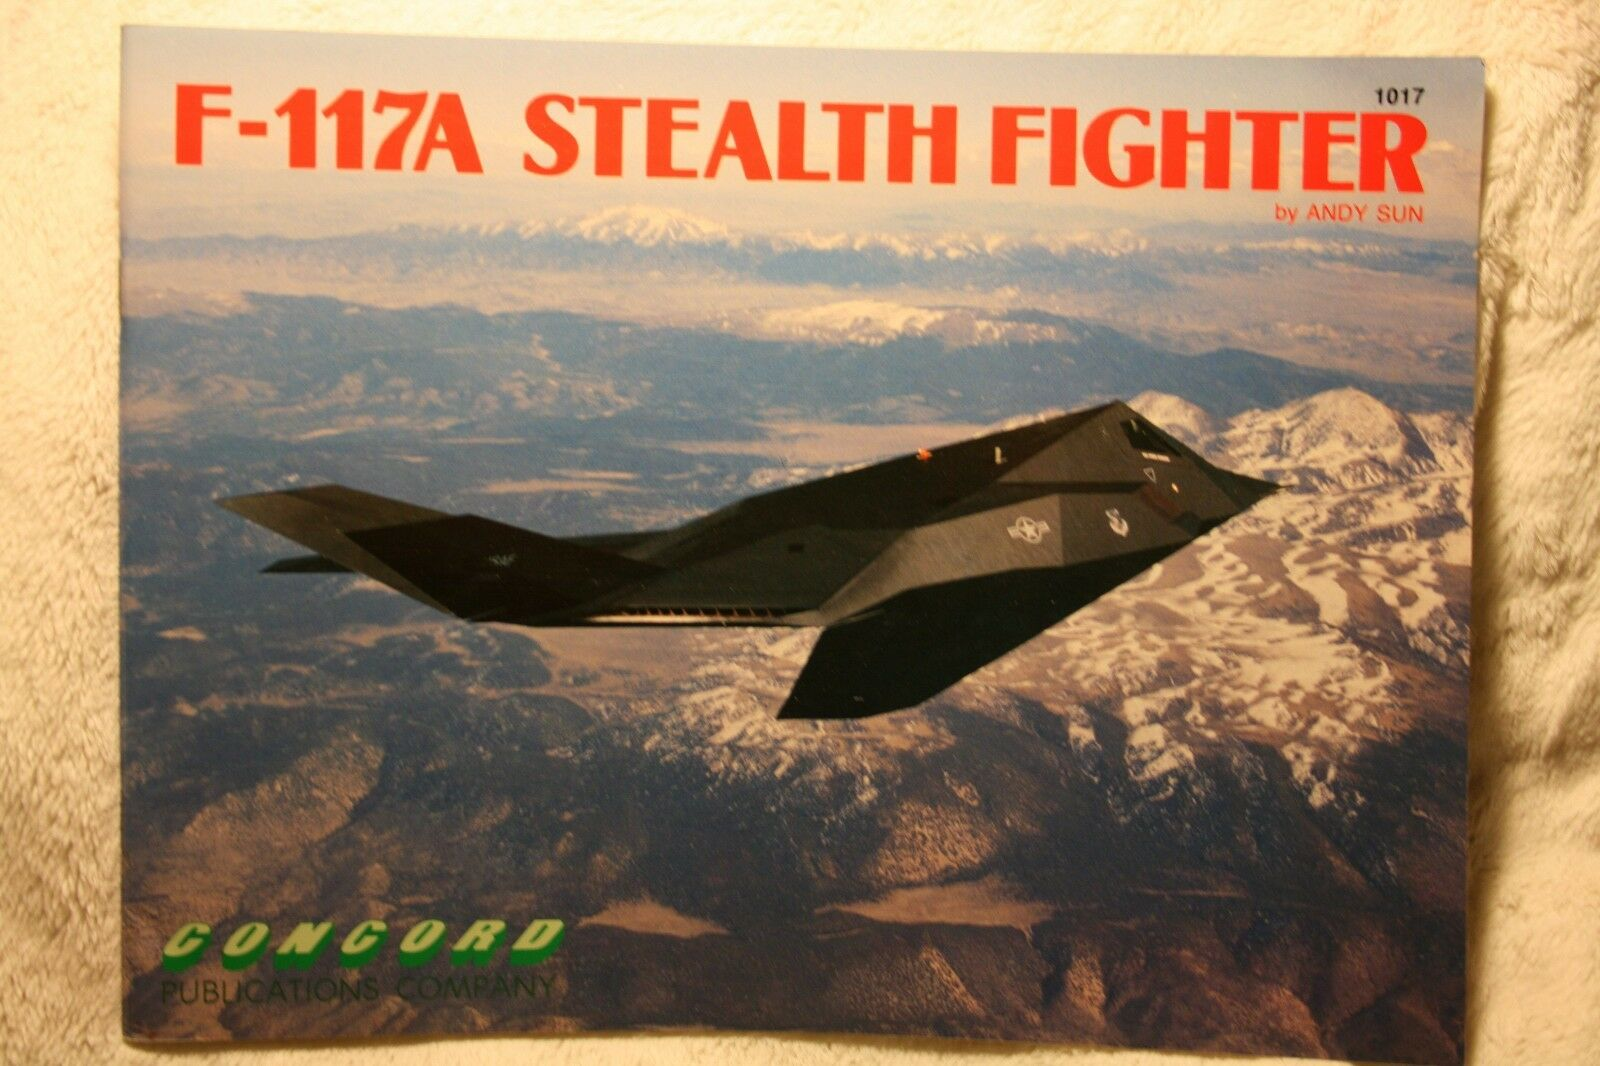 F-117A Stealth Fighter Concord Military Book 1017 Andy Sun Like New |